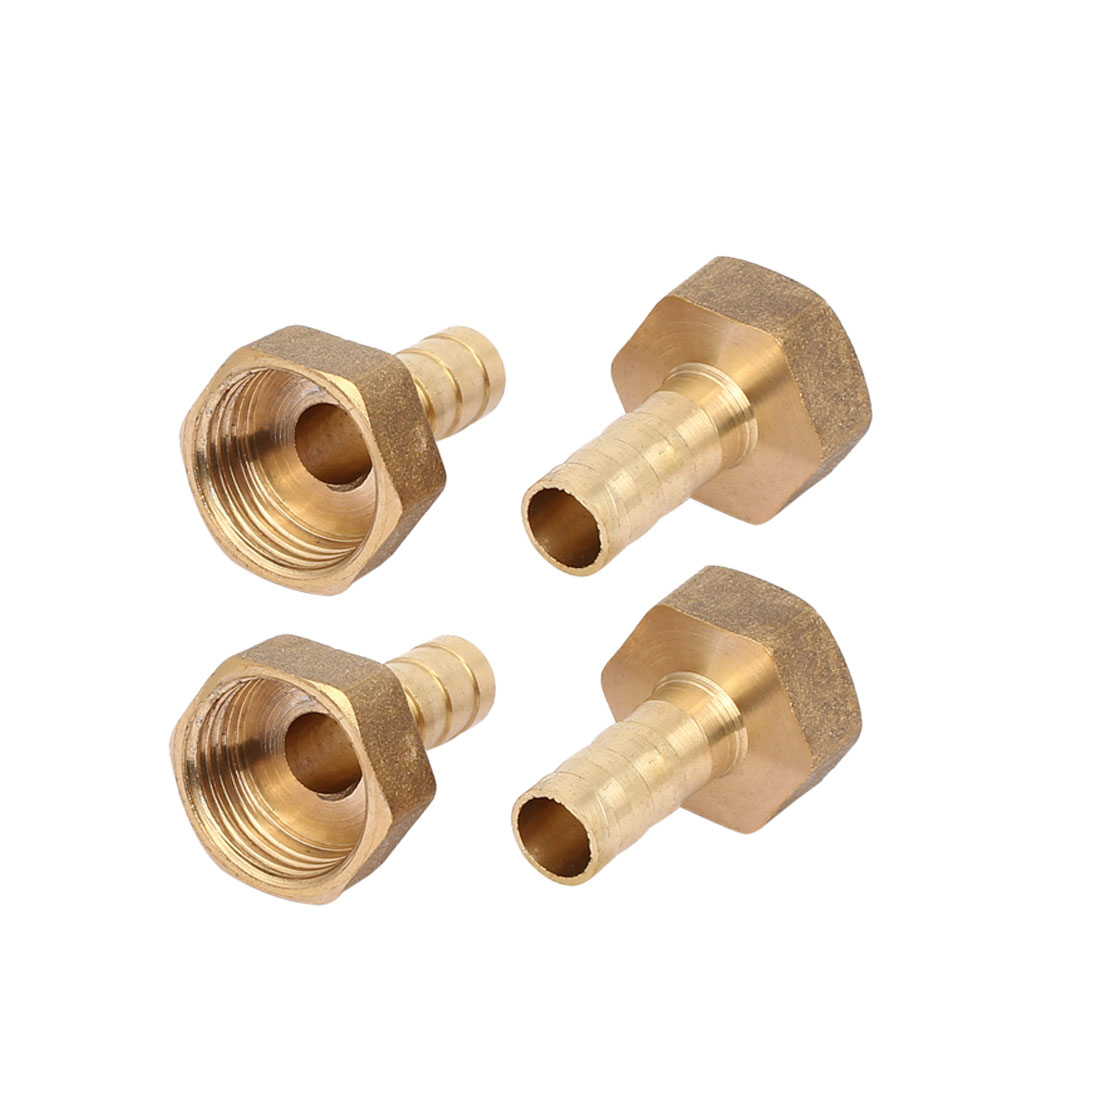 1/2BSP Female Thread 10mm Hose Barb Brass Tubing Fittings Connector 4pcs